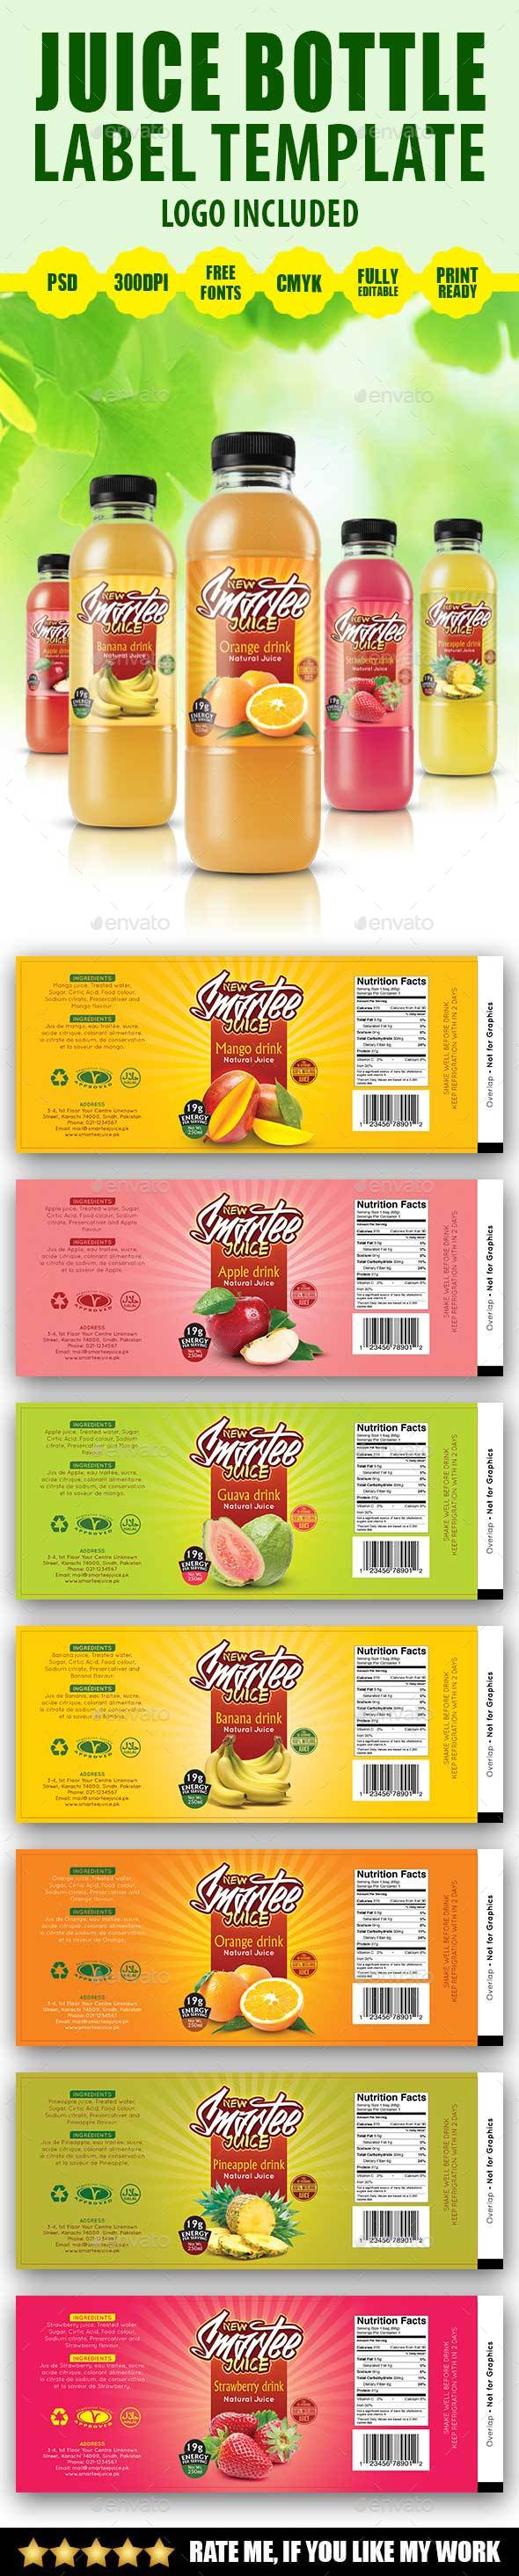 Juice Bottle Label Template V2 by Artsignz | GraphicRiver